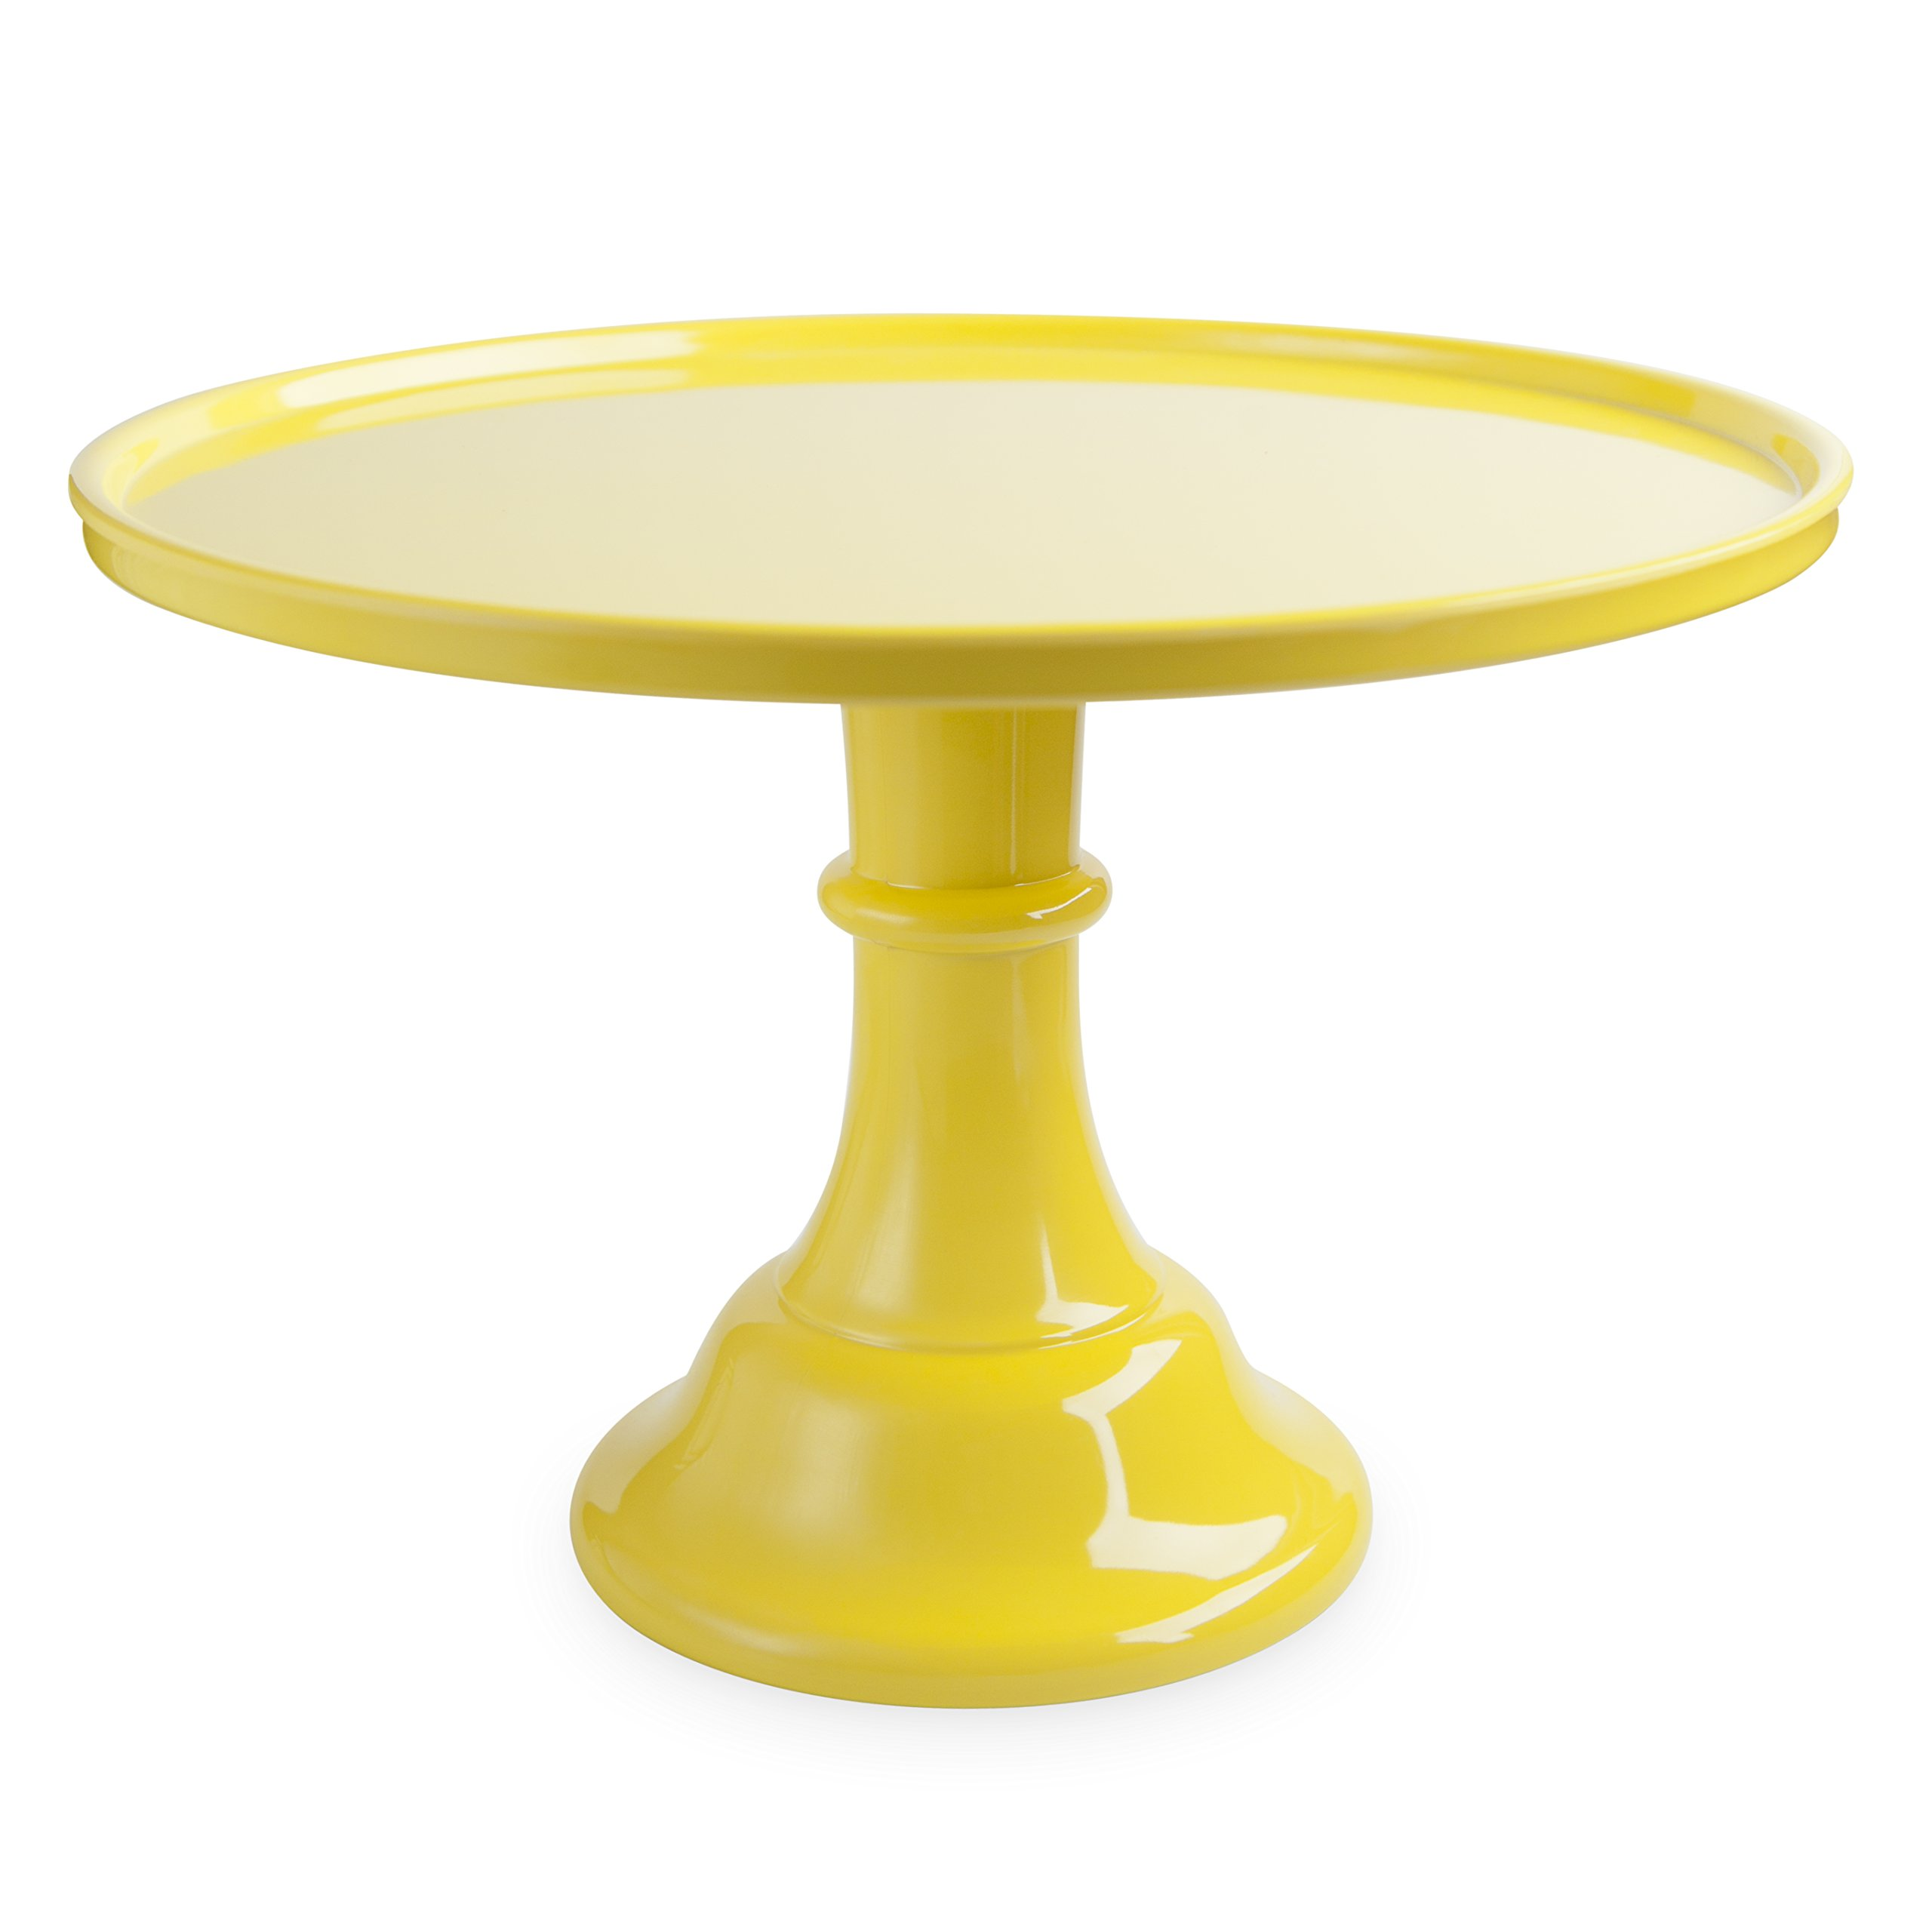 Cakewalk 6466 Melamine Cake Stands, One Size, Yellow